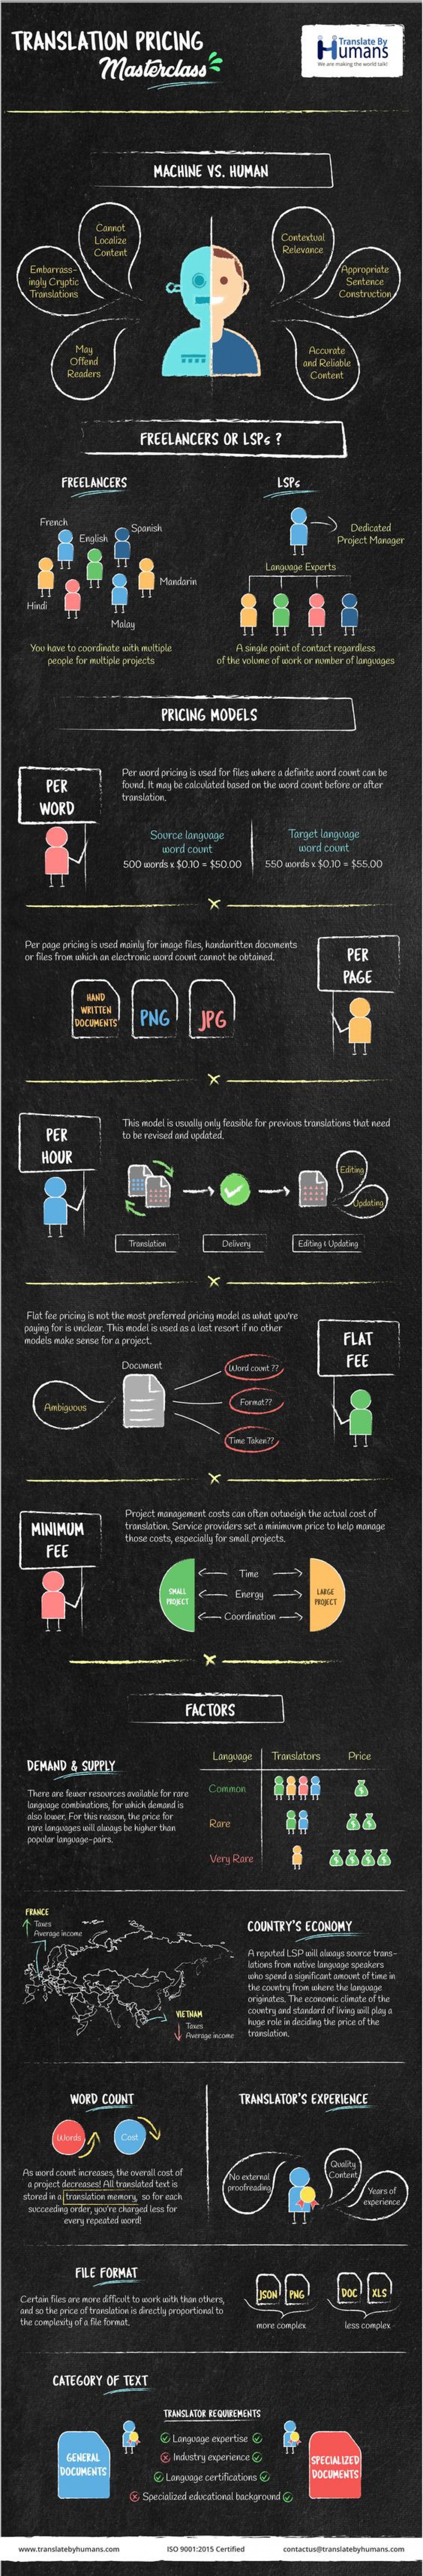 Infographic: Translation Pricing Masterclass  Infographic